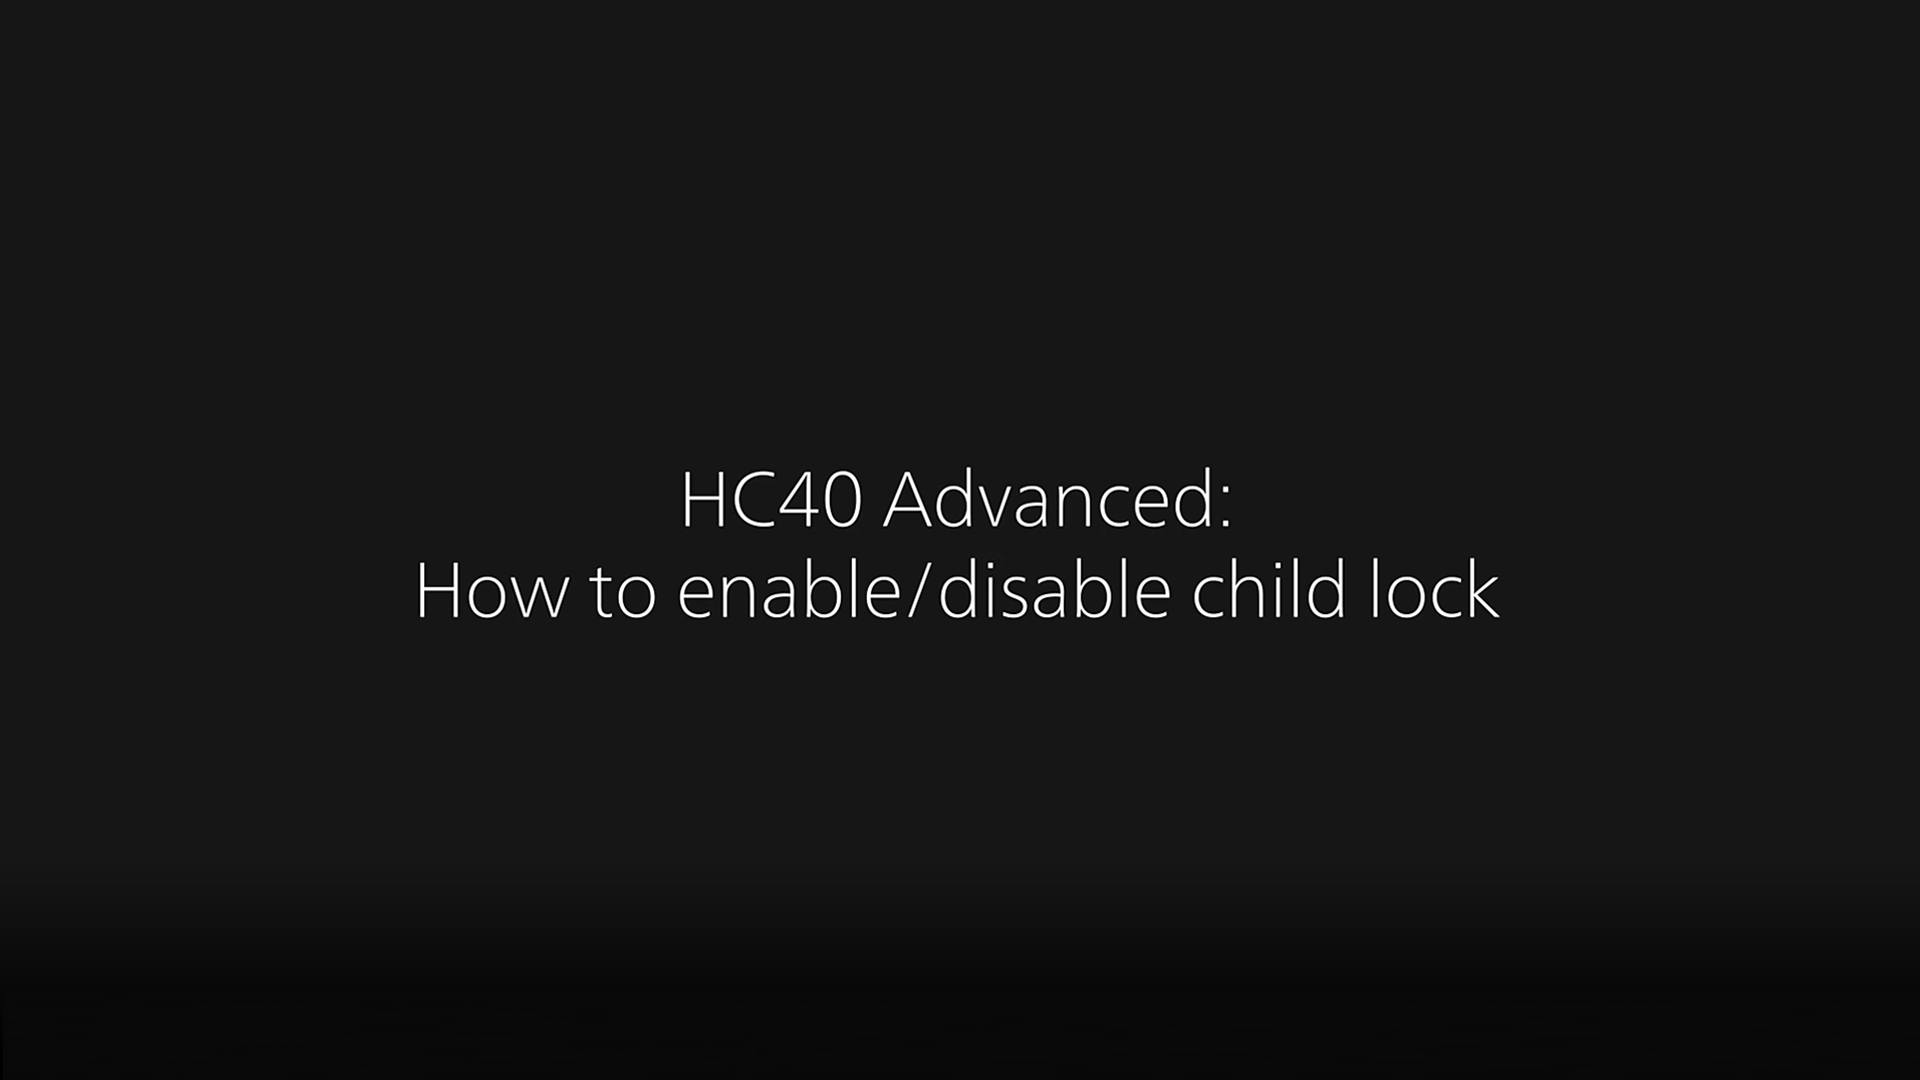 HC40 how to enable/disable the child lock